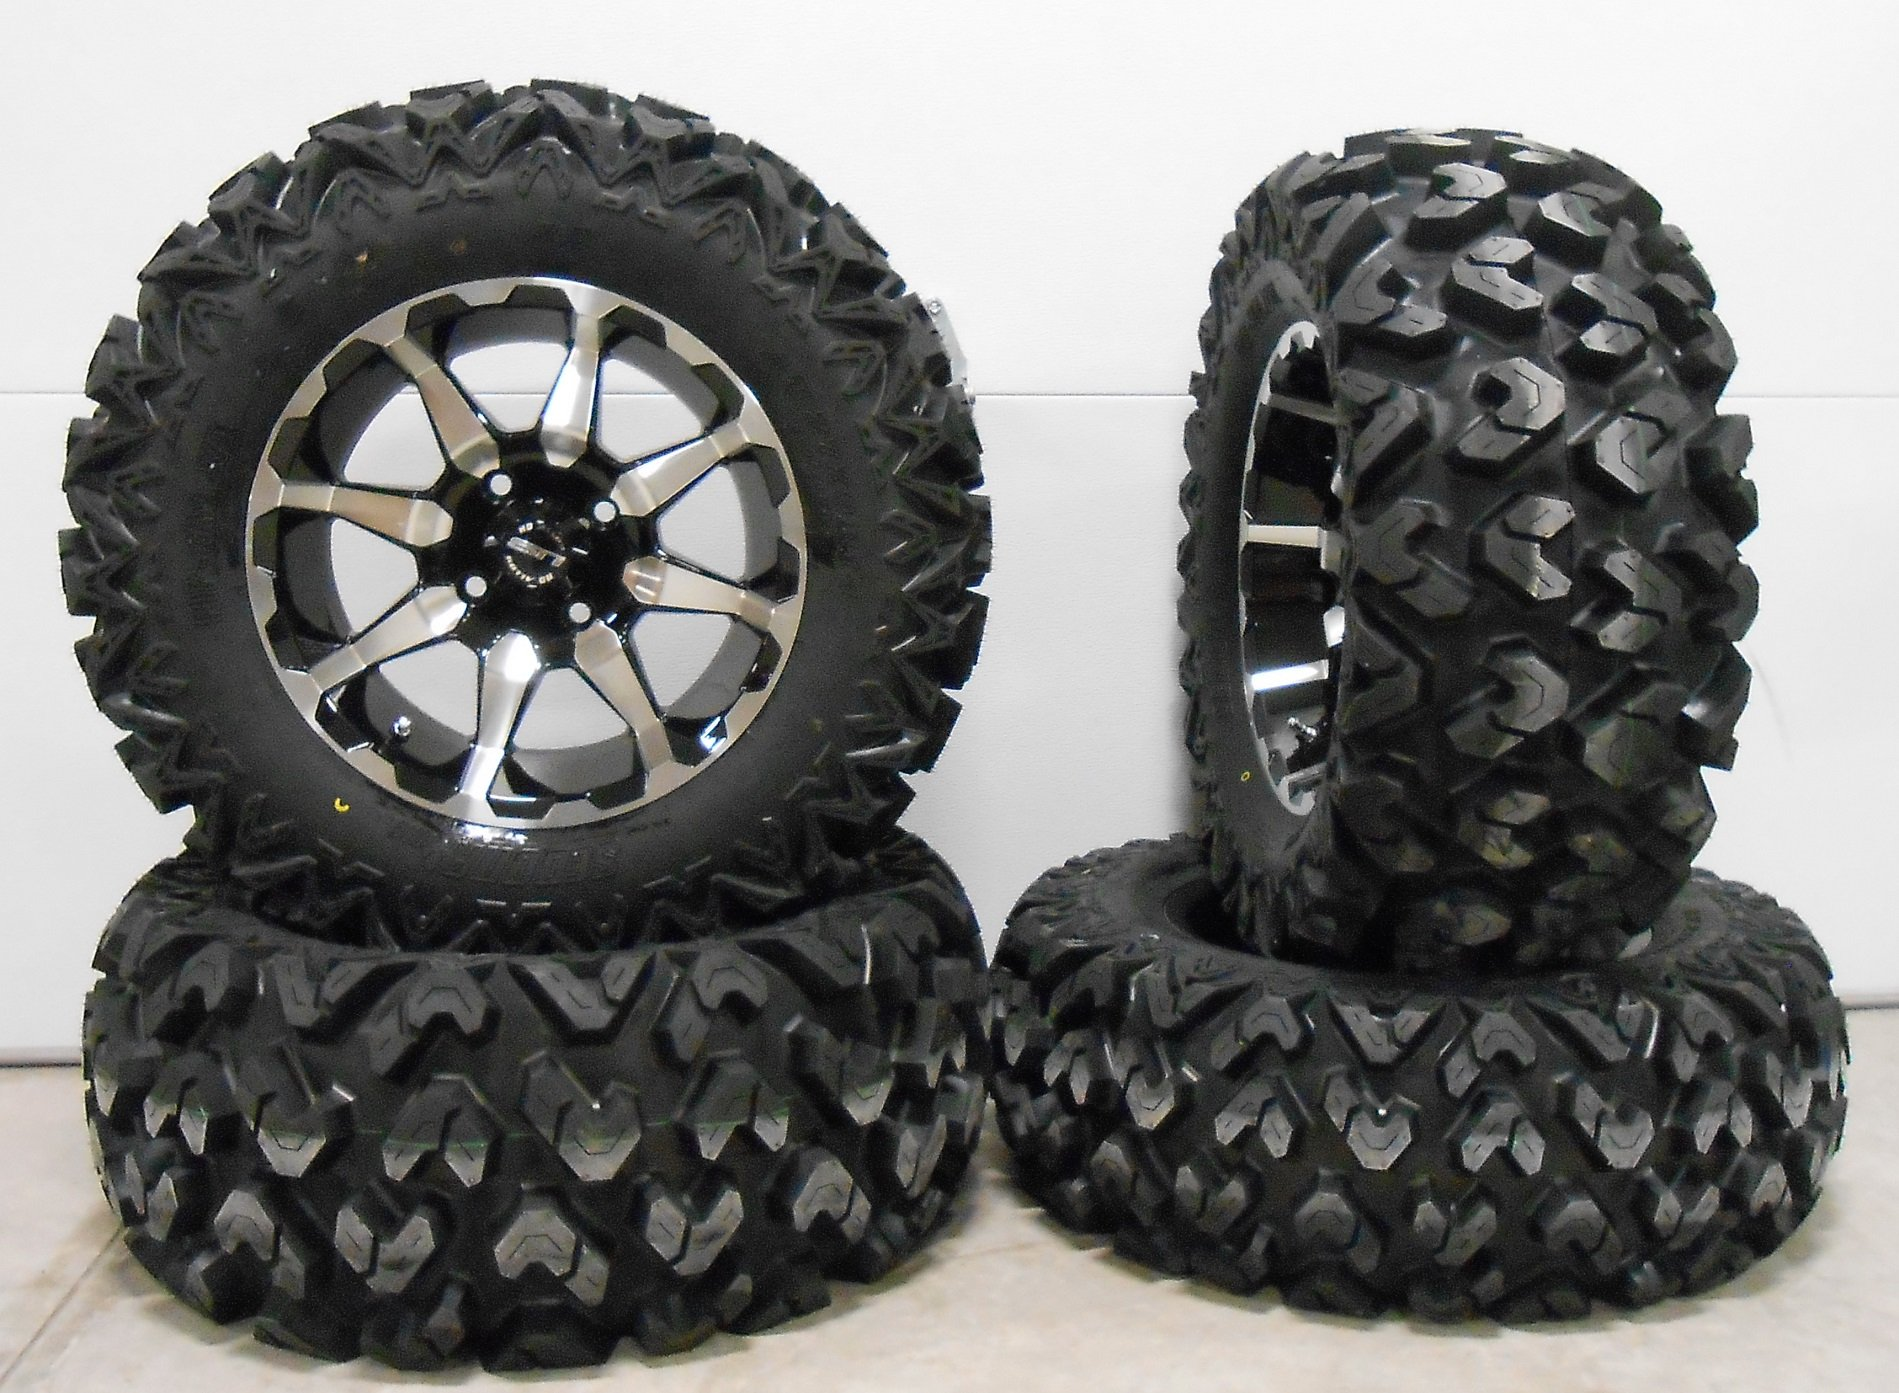 Bundle - 9 Items: STI HD6 14'' Wheels Machined 27'' Rip Saw Tires [4x156 Bolt Pattern 12mmx1.5 Lug Kit]